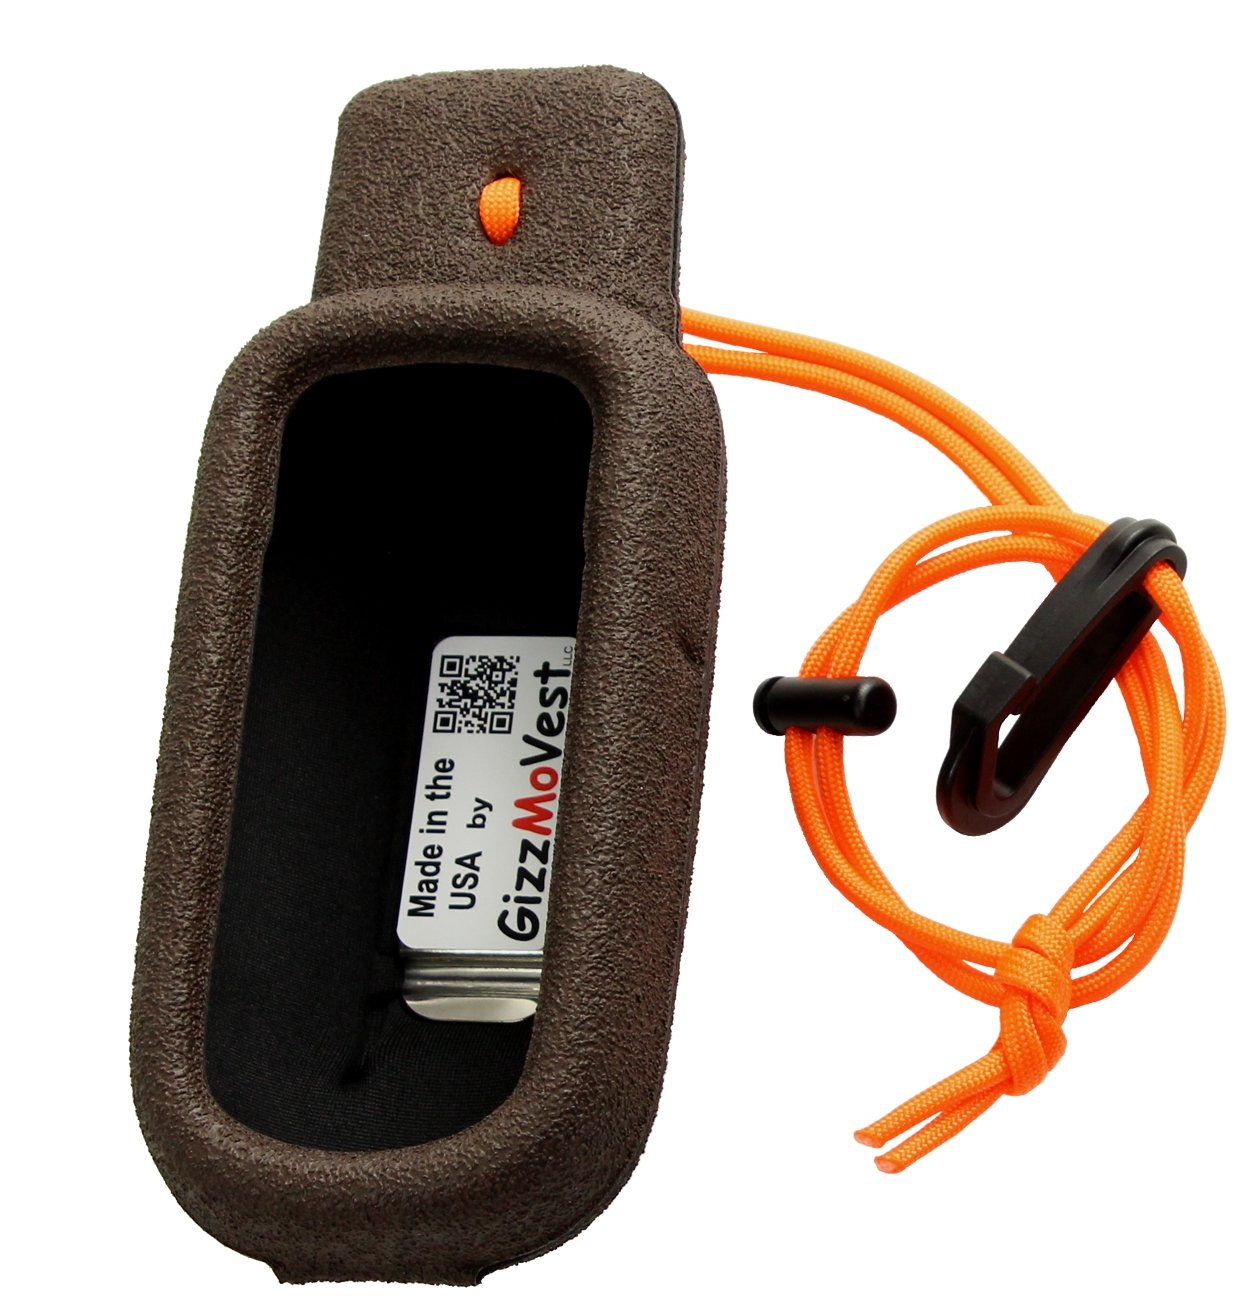 Case Cover compatible with Garmin Alpha 100, Made in the USA by GizzMoVest LLC Cof.